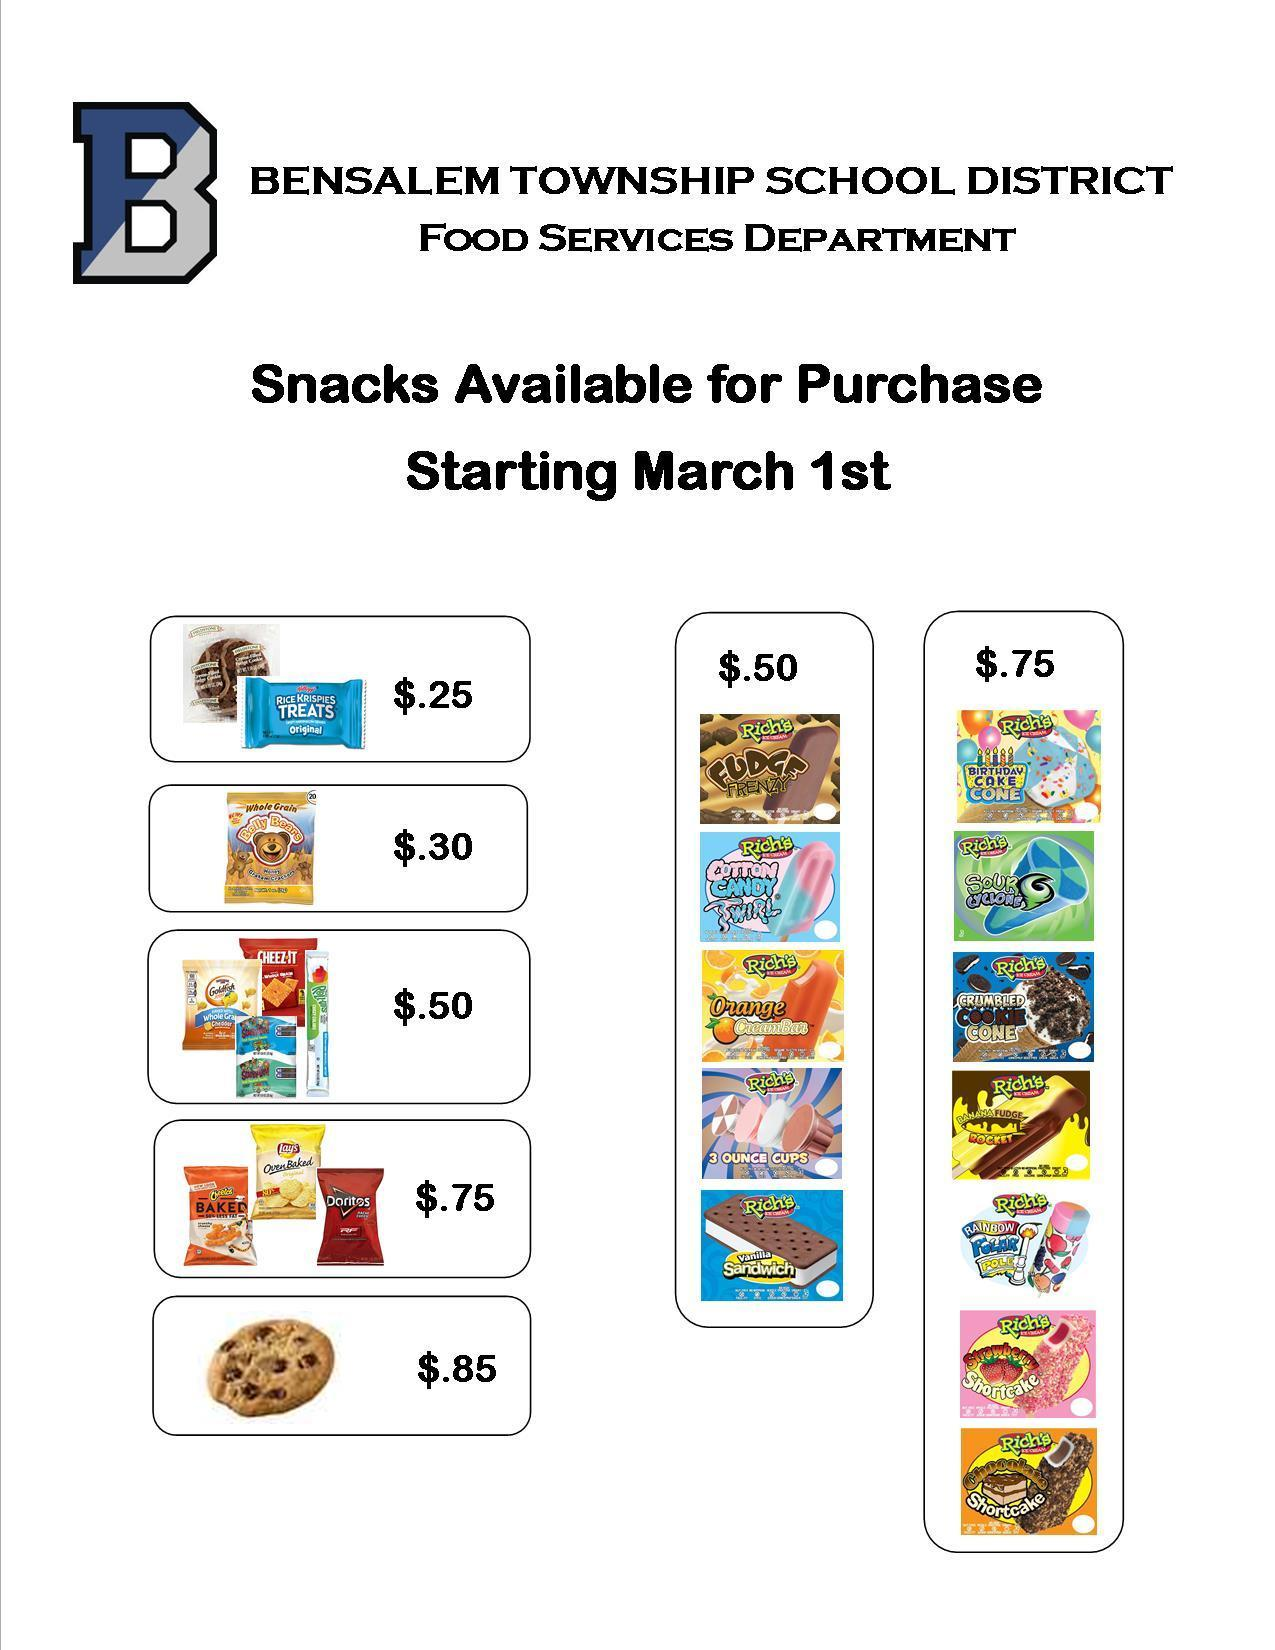 Starting March 1st Snacks will begin being available for Purchase in the cafeterias